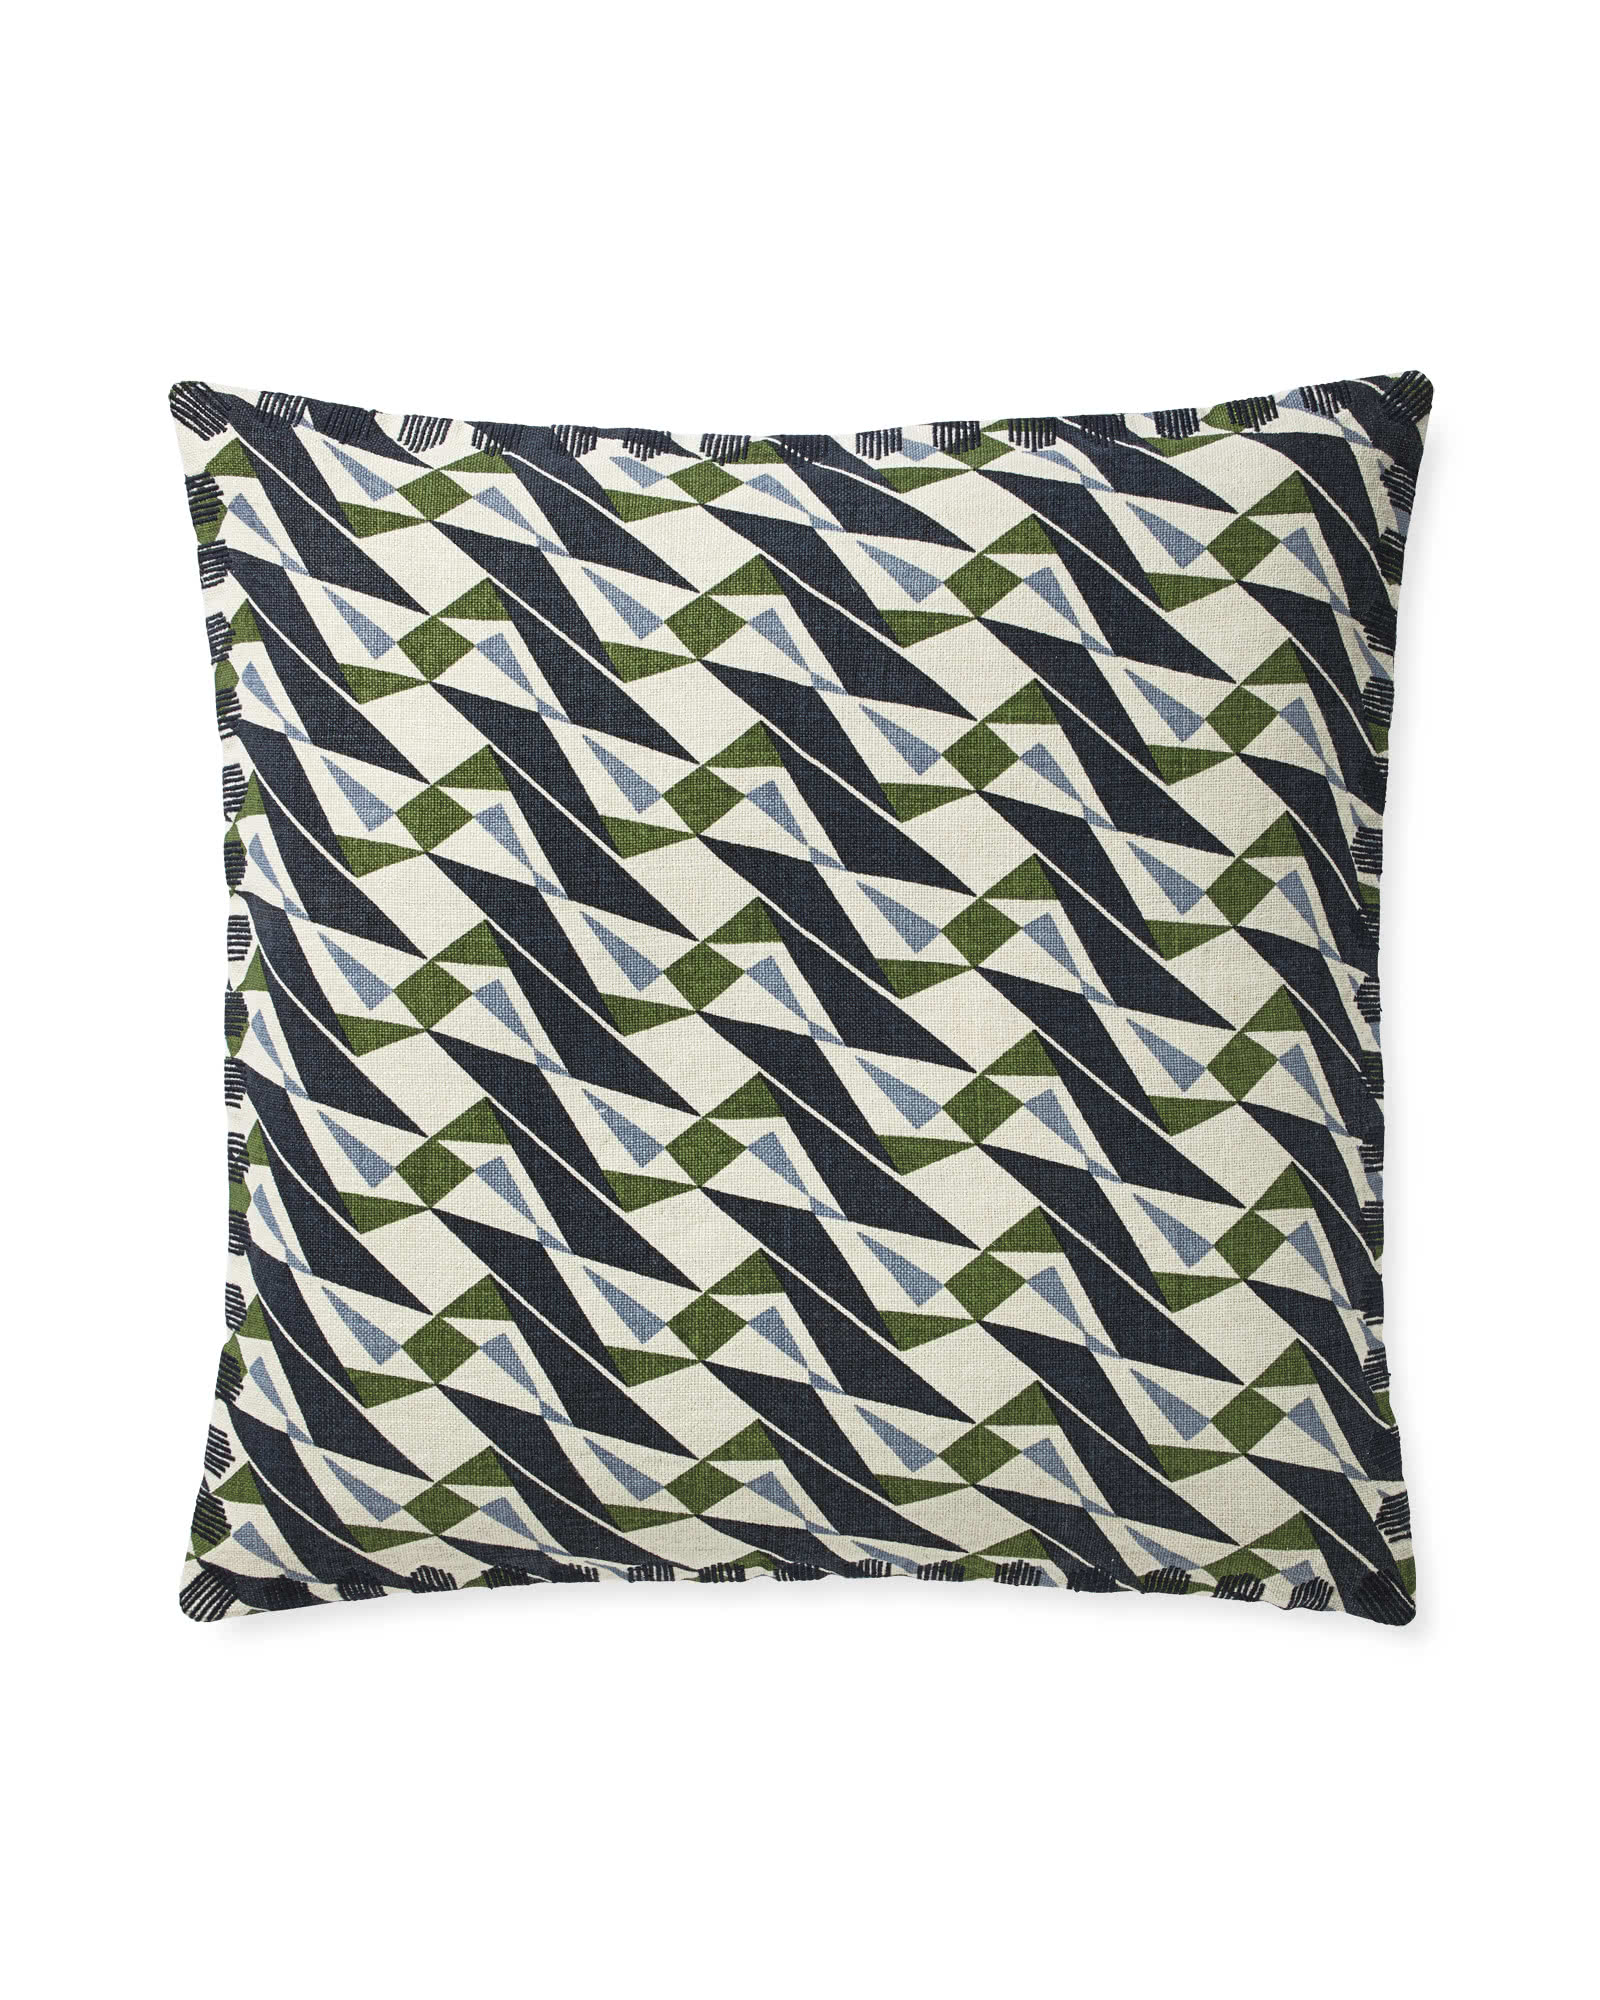 Robson Pillow Cover, Green